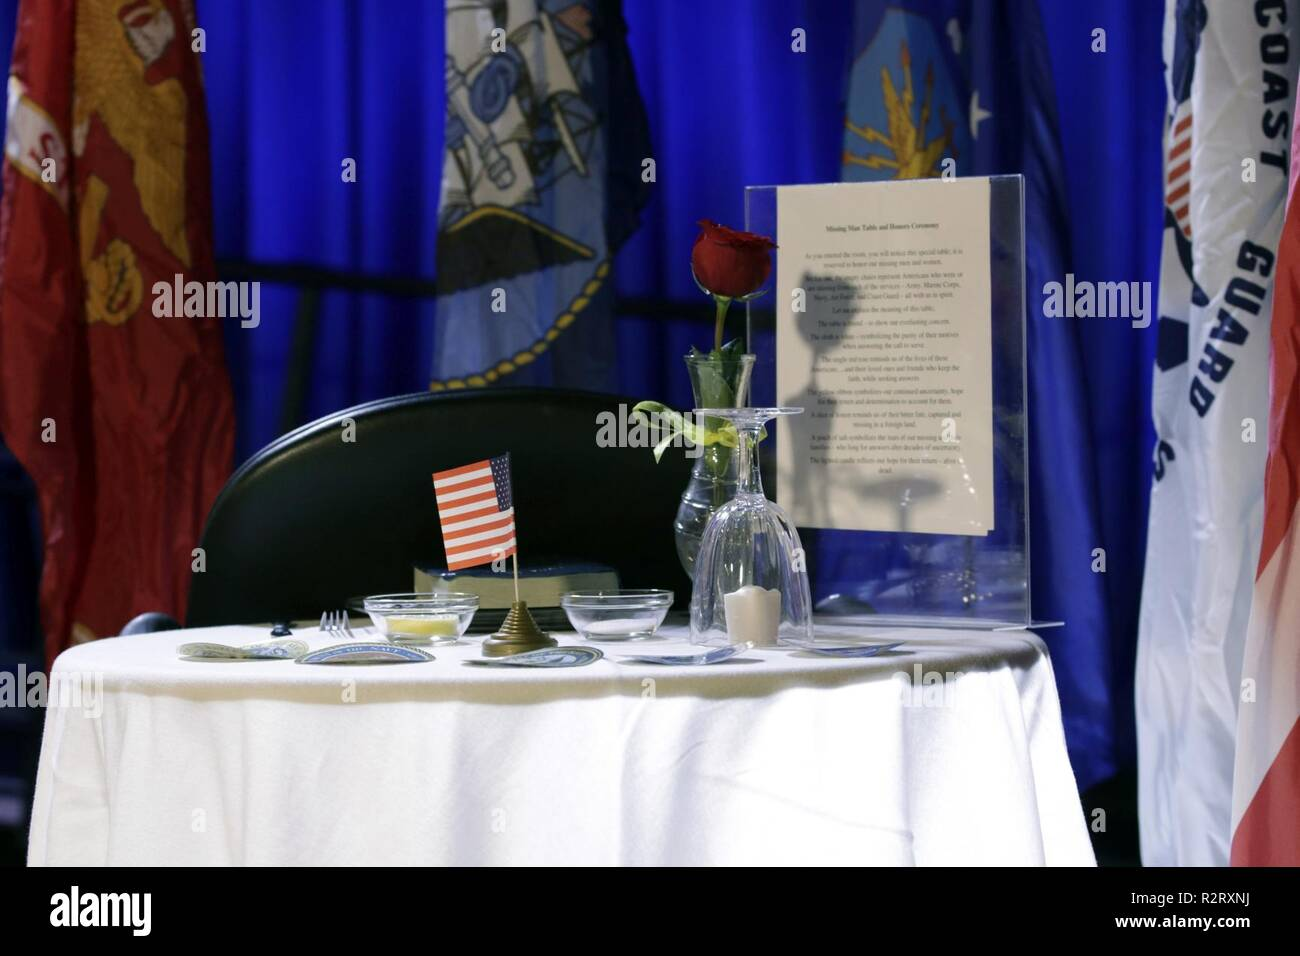 The Missing Man Table is explained to attendees of the U.S. Department of Housing and Urban Development's 2018 Veteran's Day ceremony, hosted by the Honorable Dr. Ben Carson, secretary of HUD, on Nov. 8, in Washington, D.C. The table remembers and honors the missing in action and prisoners of war. Stock Photo